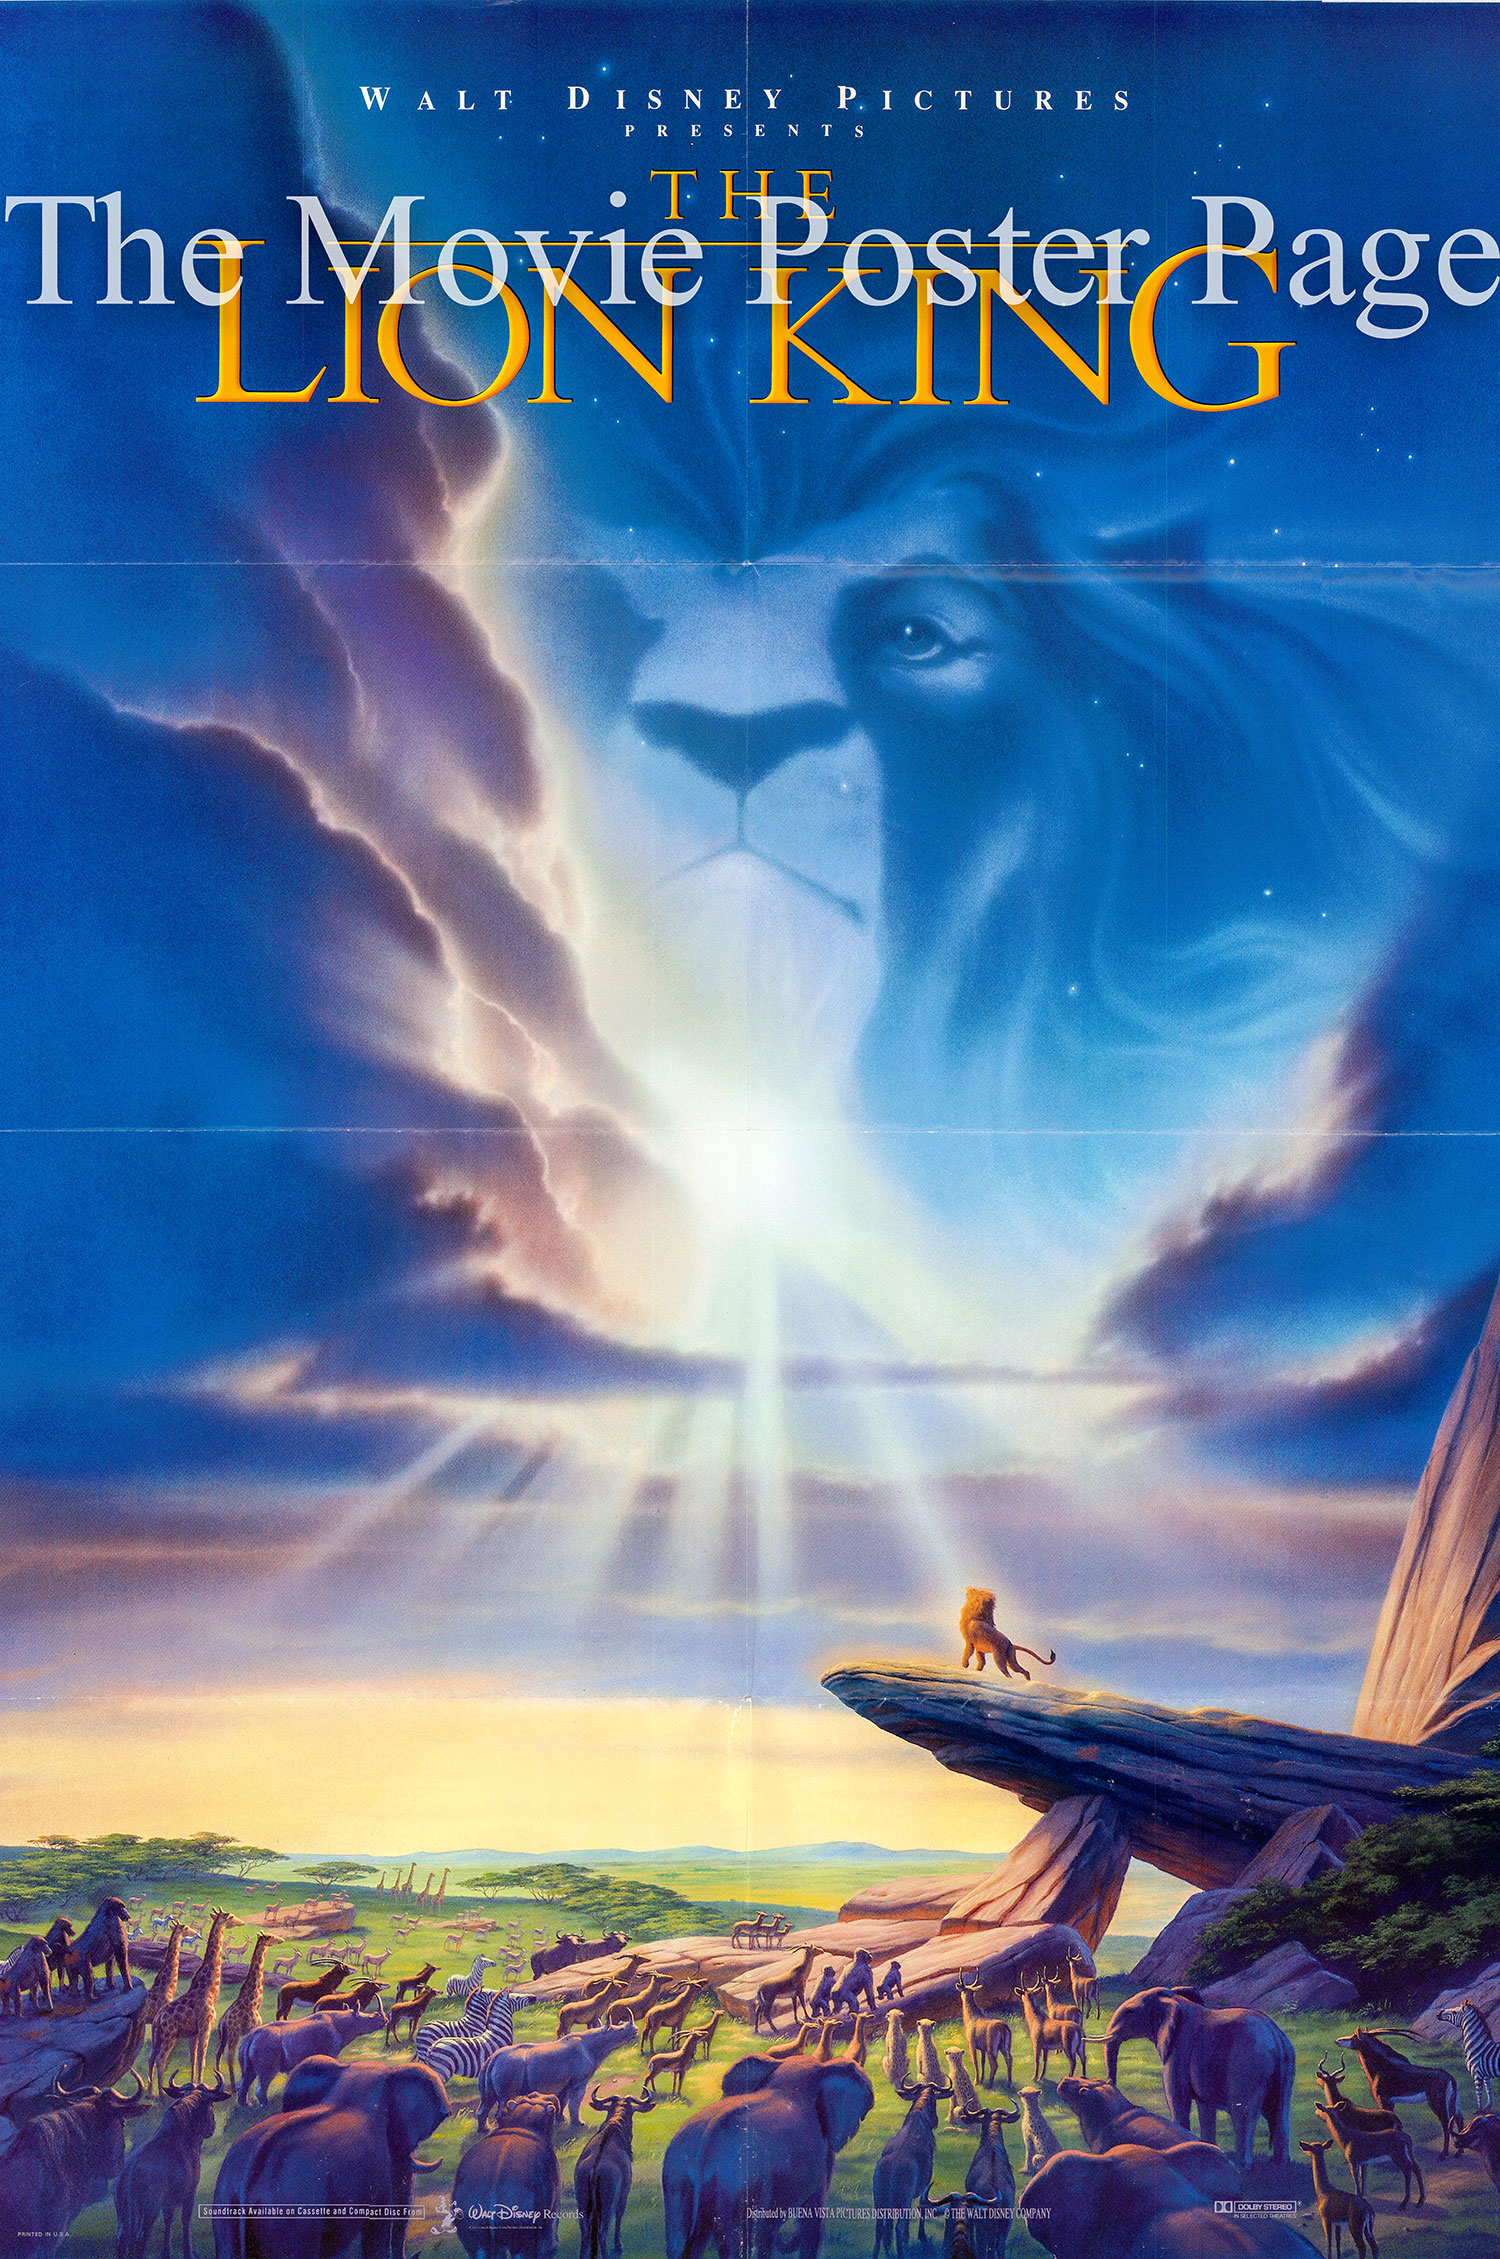 Pictured is a US one-sheet poster for the 1994 Disney Animation film The Lion King starring Matthew Broderick as the voice of the adult Simba.